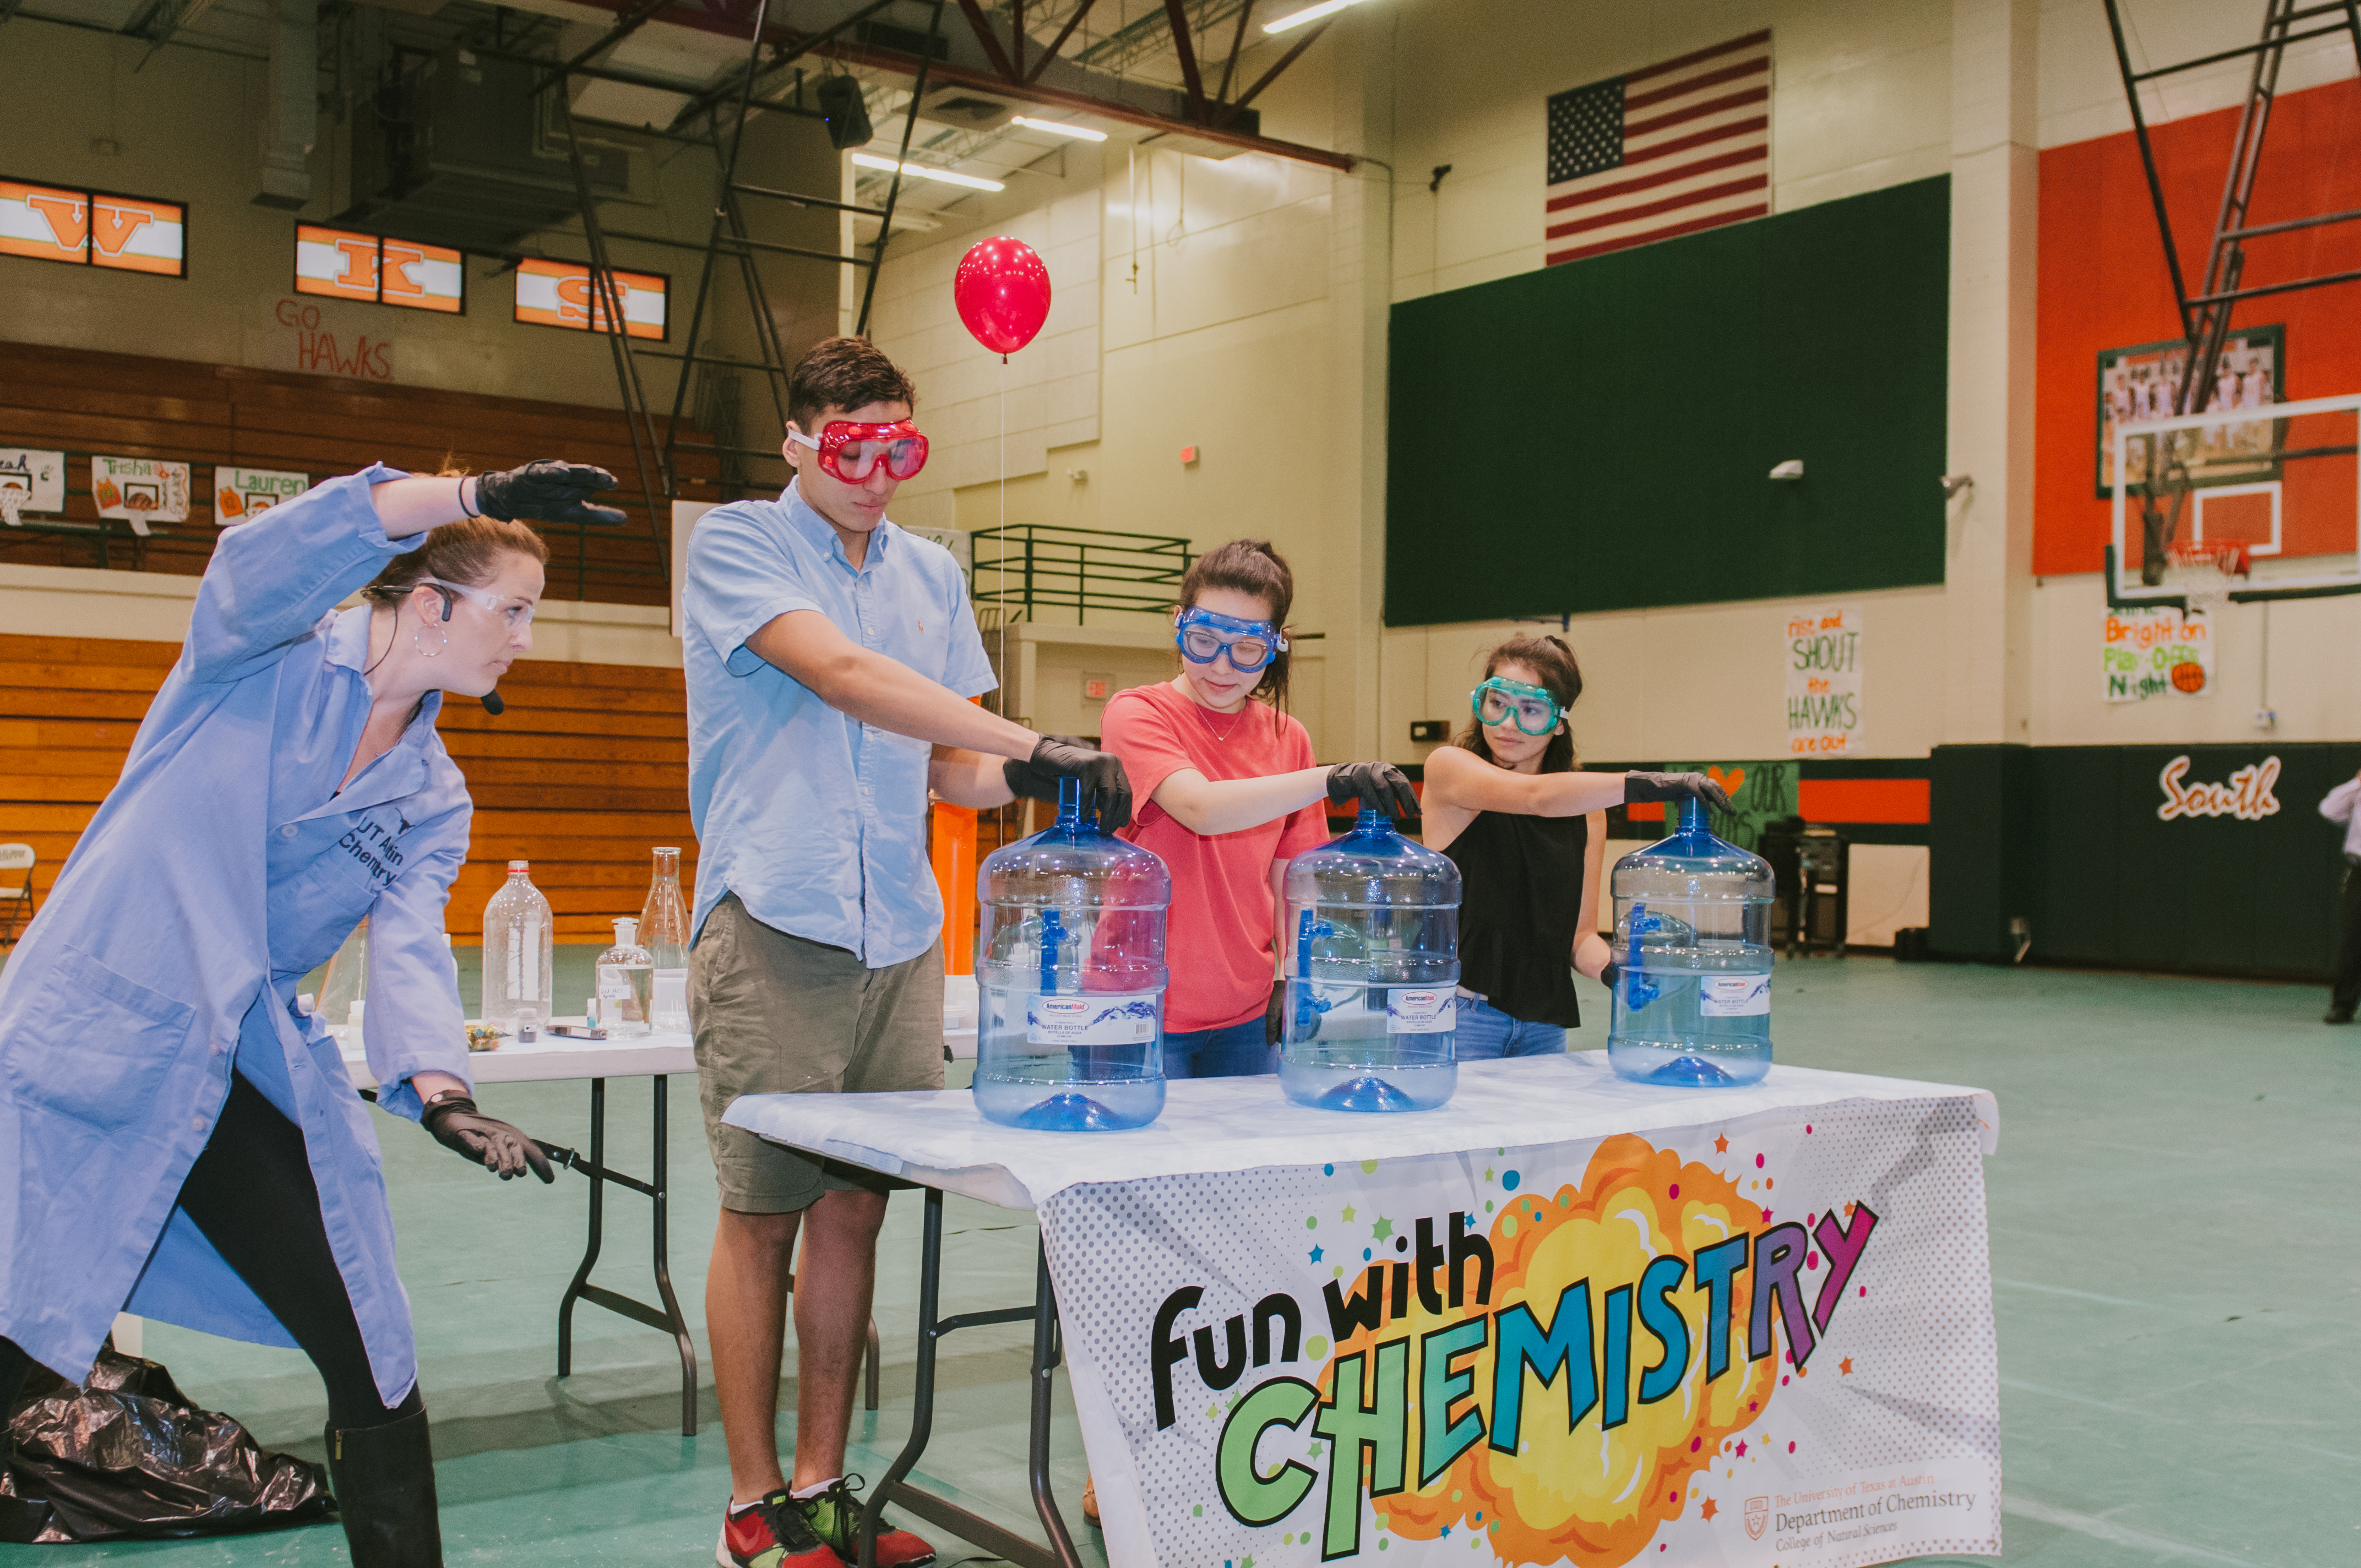 UT Austin brings Fun with Chemistry to HCISD